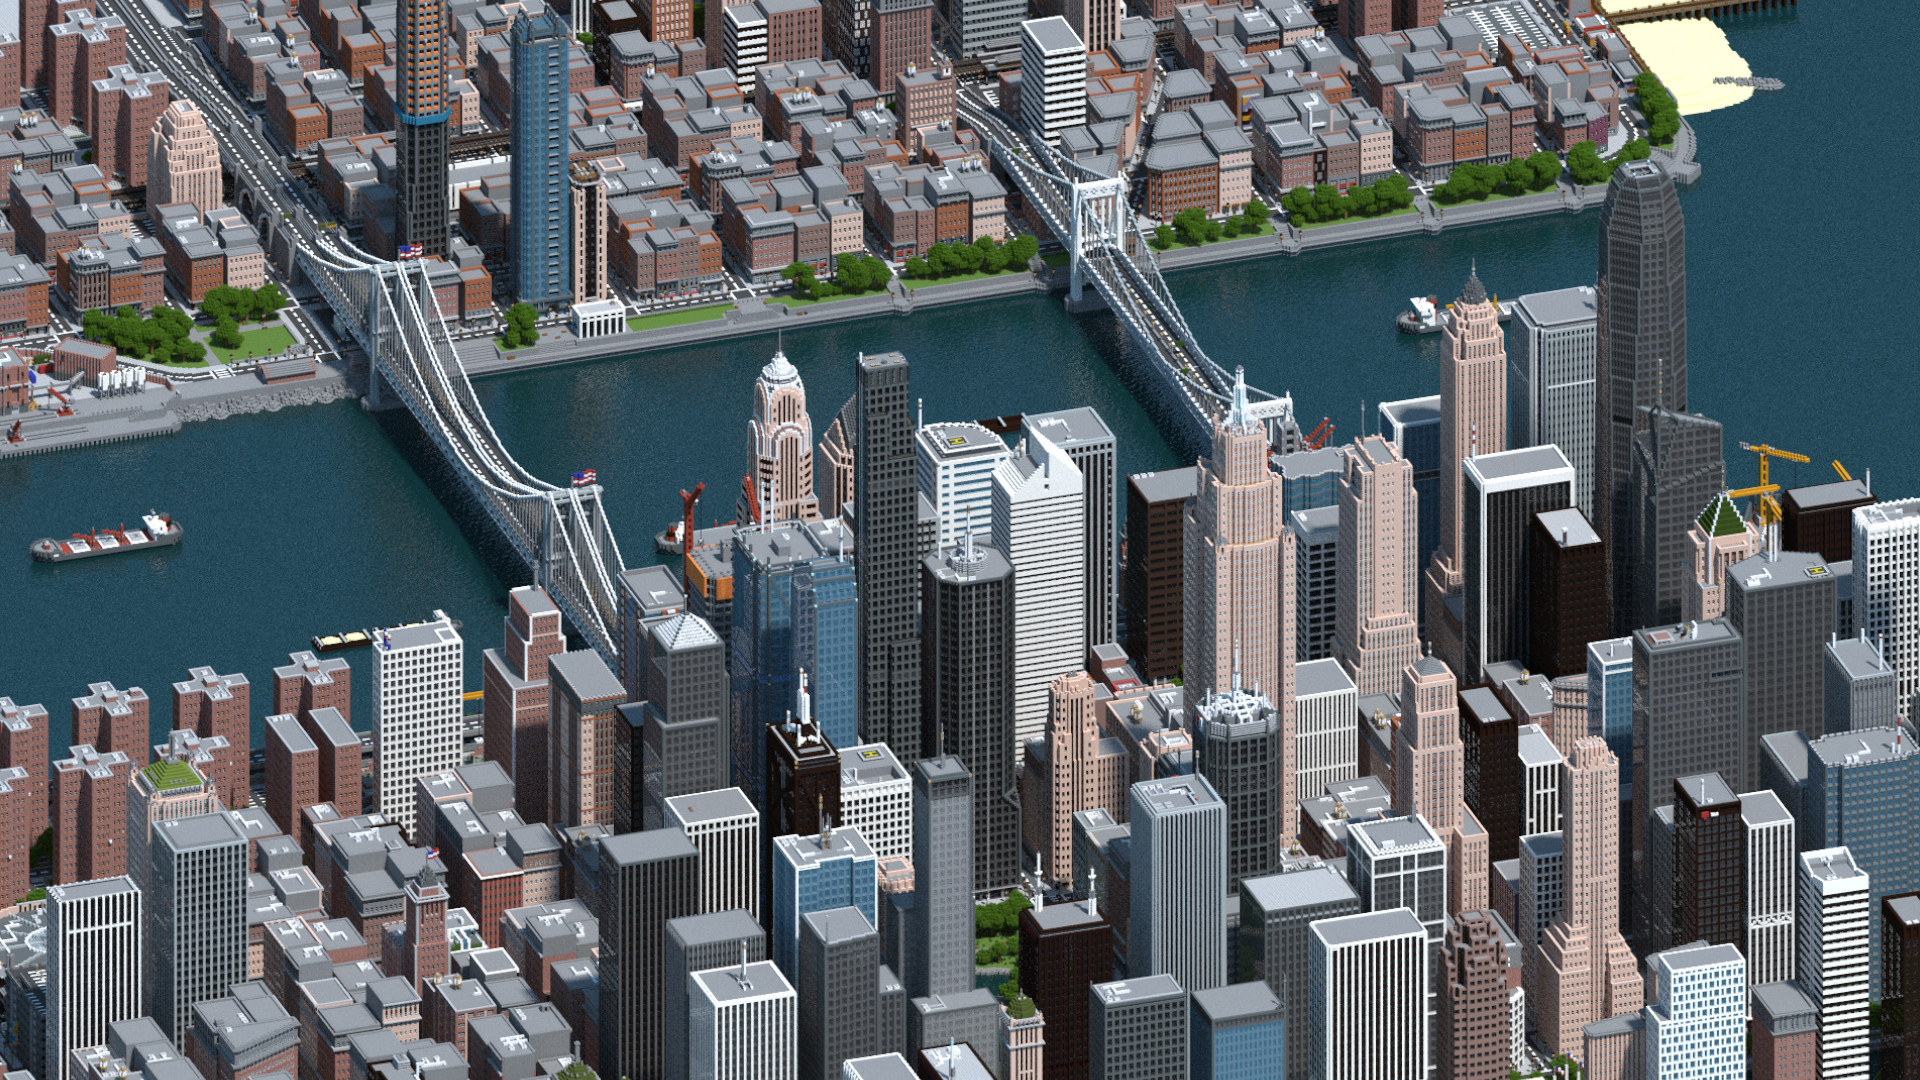 Minecraft player spends three years creating a fictional US city